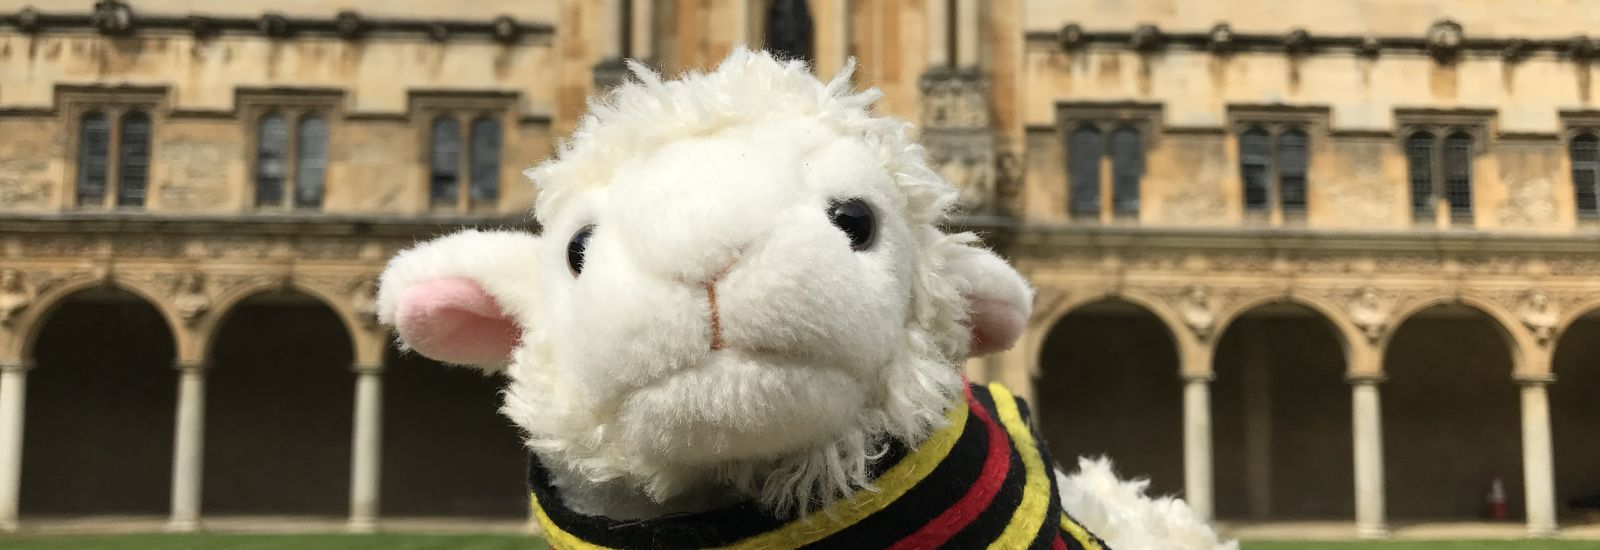 Agnes the Access Lamb, mascot of the St John's Access Office, in Canterbury Quad